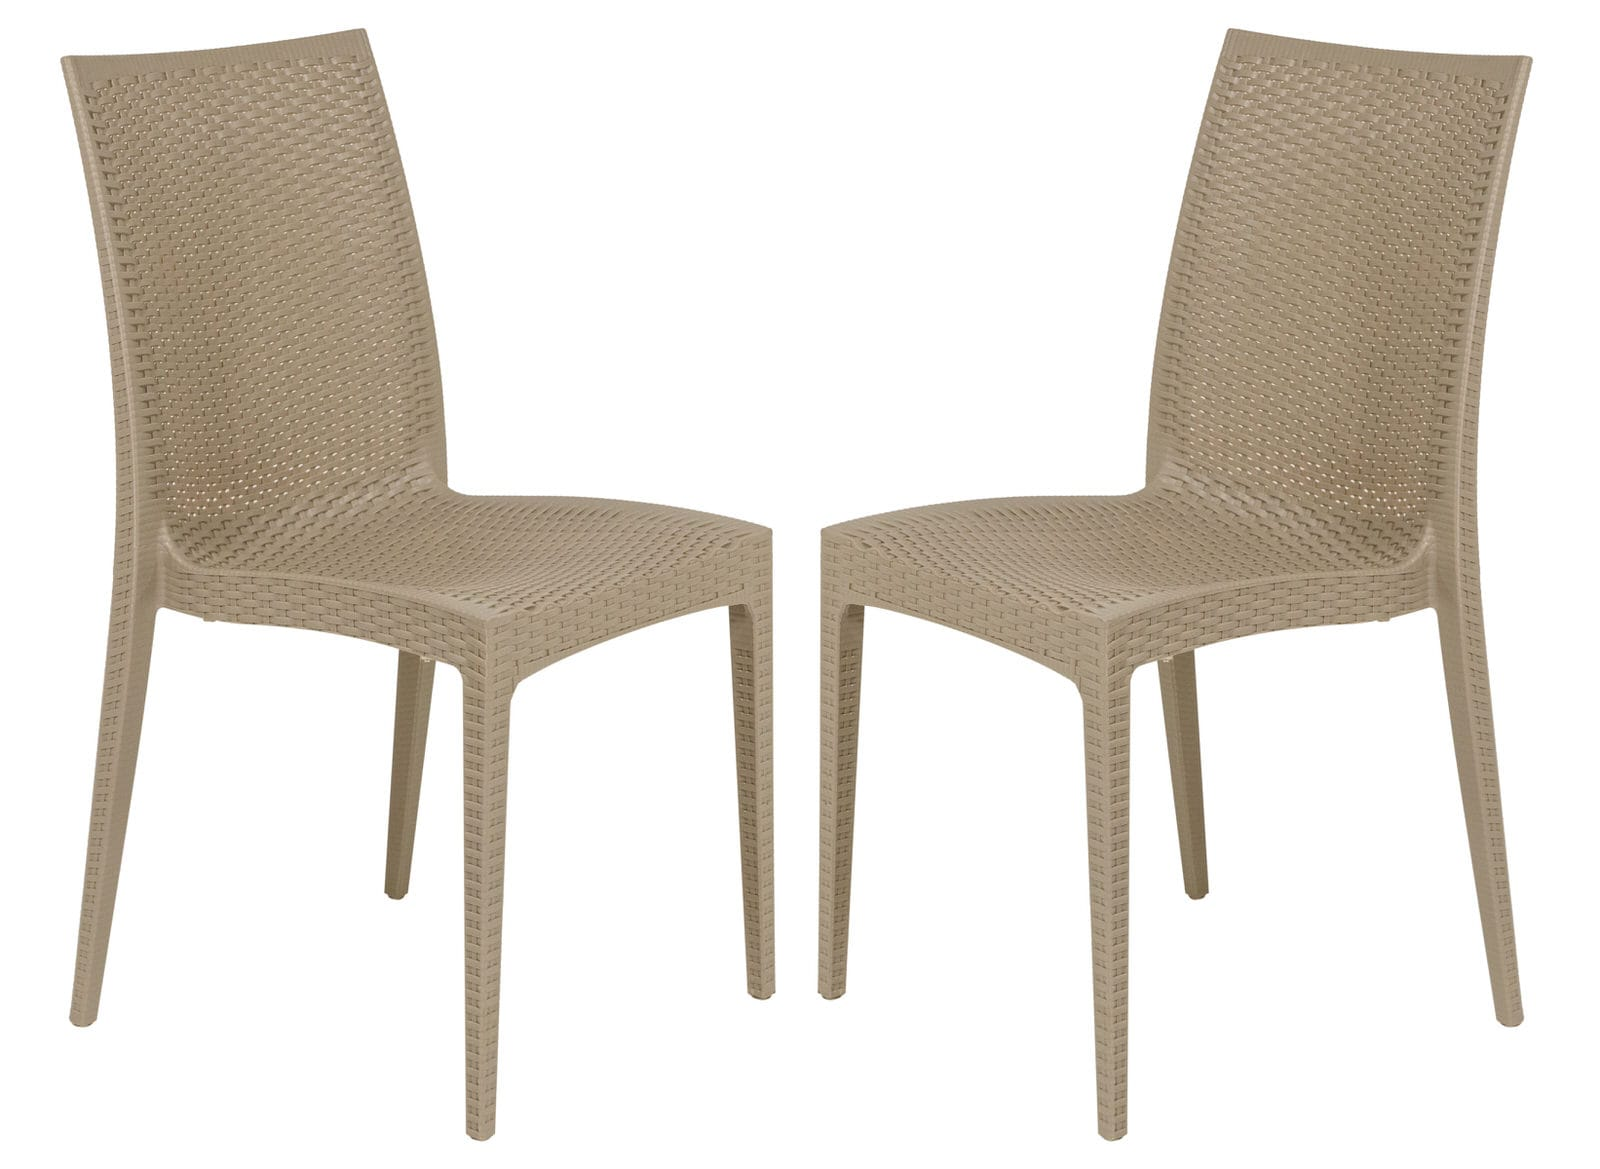 Outstanding Weave Mace Taupe Armless Dining Chair Set Of 2 By Leisuremod Creativecarmelina Interior Chair Design Creativecarmelinacom